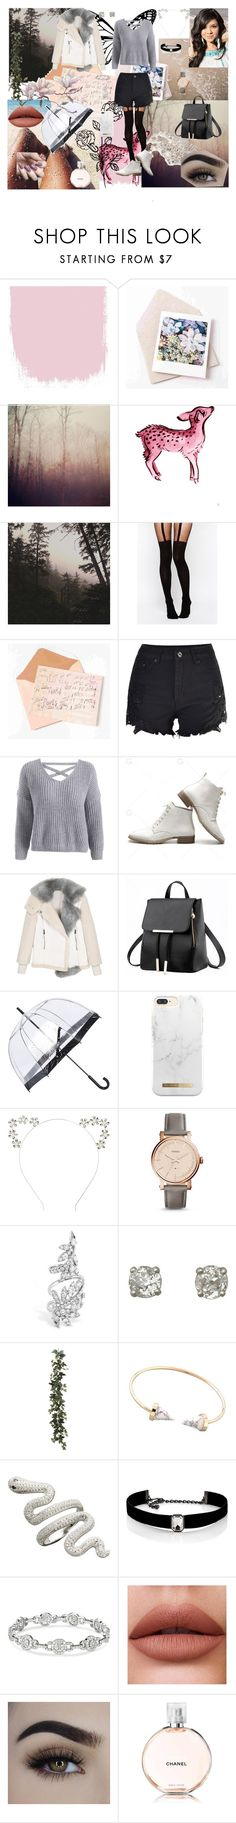 Hannah by aline-sklws on Polyvore featuring mode, ASOS, FOSSIL, Kenneth Jay Lane, Fulton, Chanel, Leah Flores, Zoya, TC Fine Intimates and Wunderkind